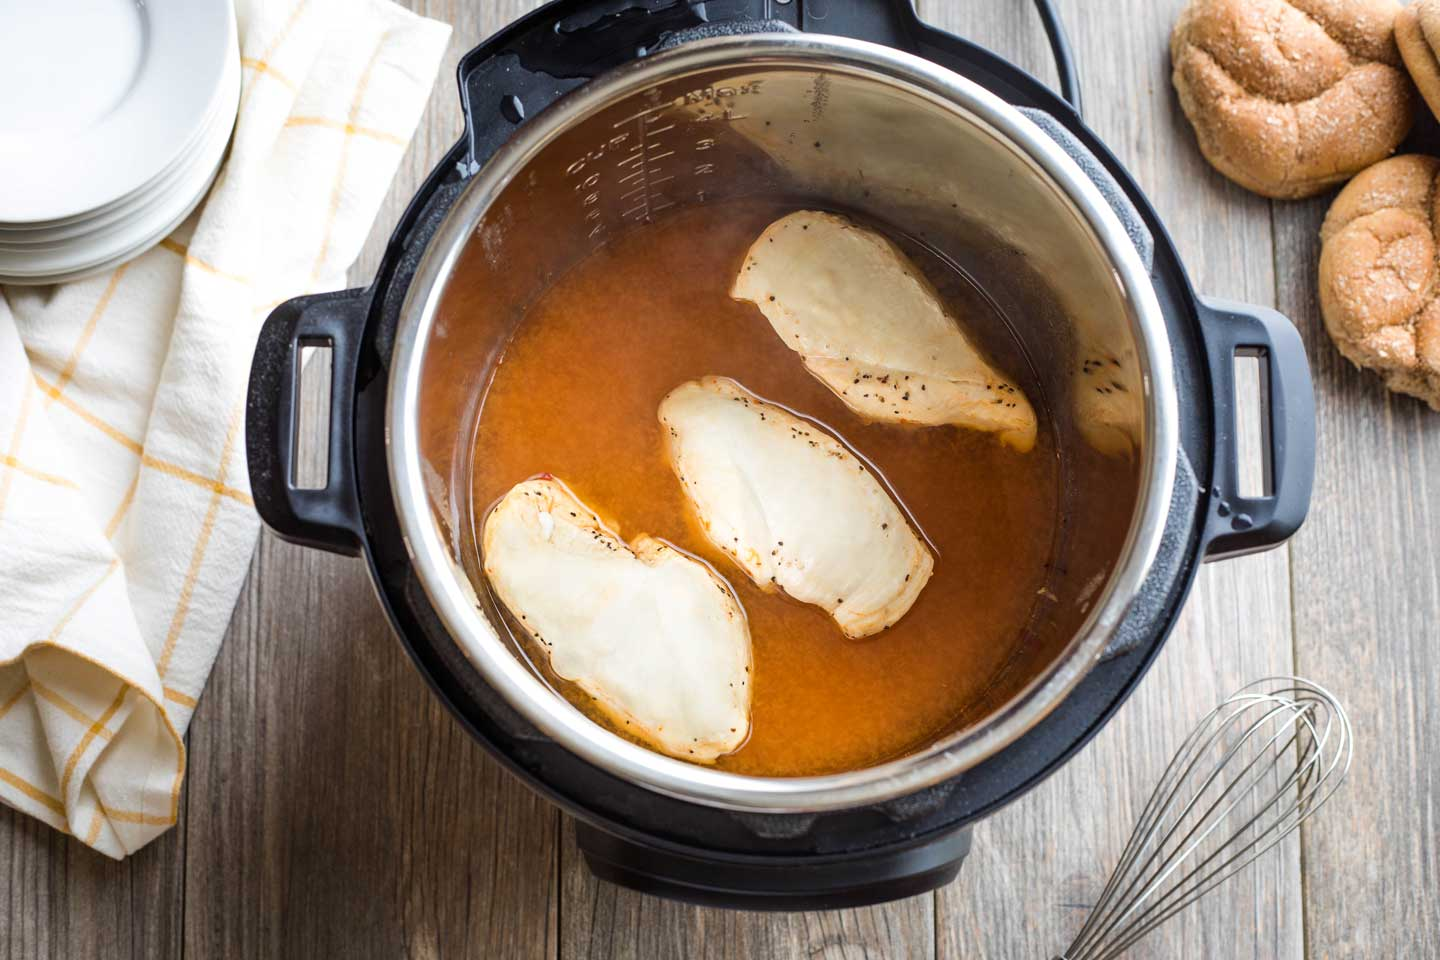 Step 2: chicken breasts are cooked in the BBQ in the Instant Pot